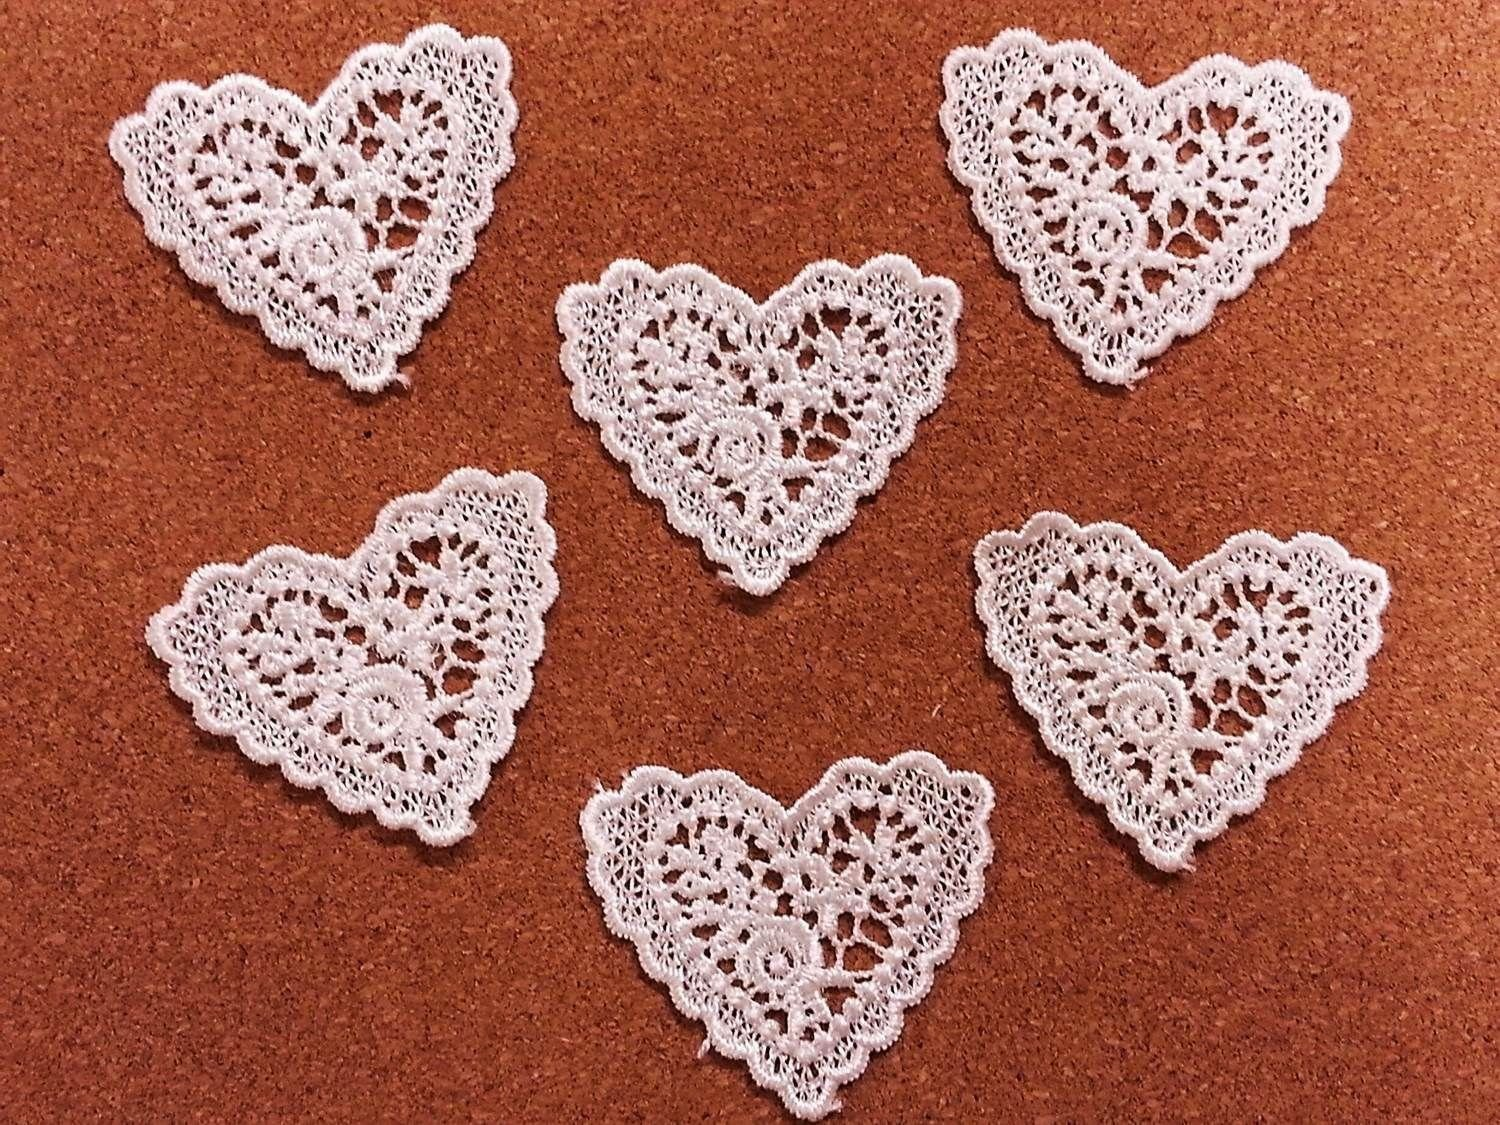 CraftbuddyUS LM8- 10 White Vintage Lace Applique Guipure, Sew On Fabric Heart Crochet Motifs